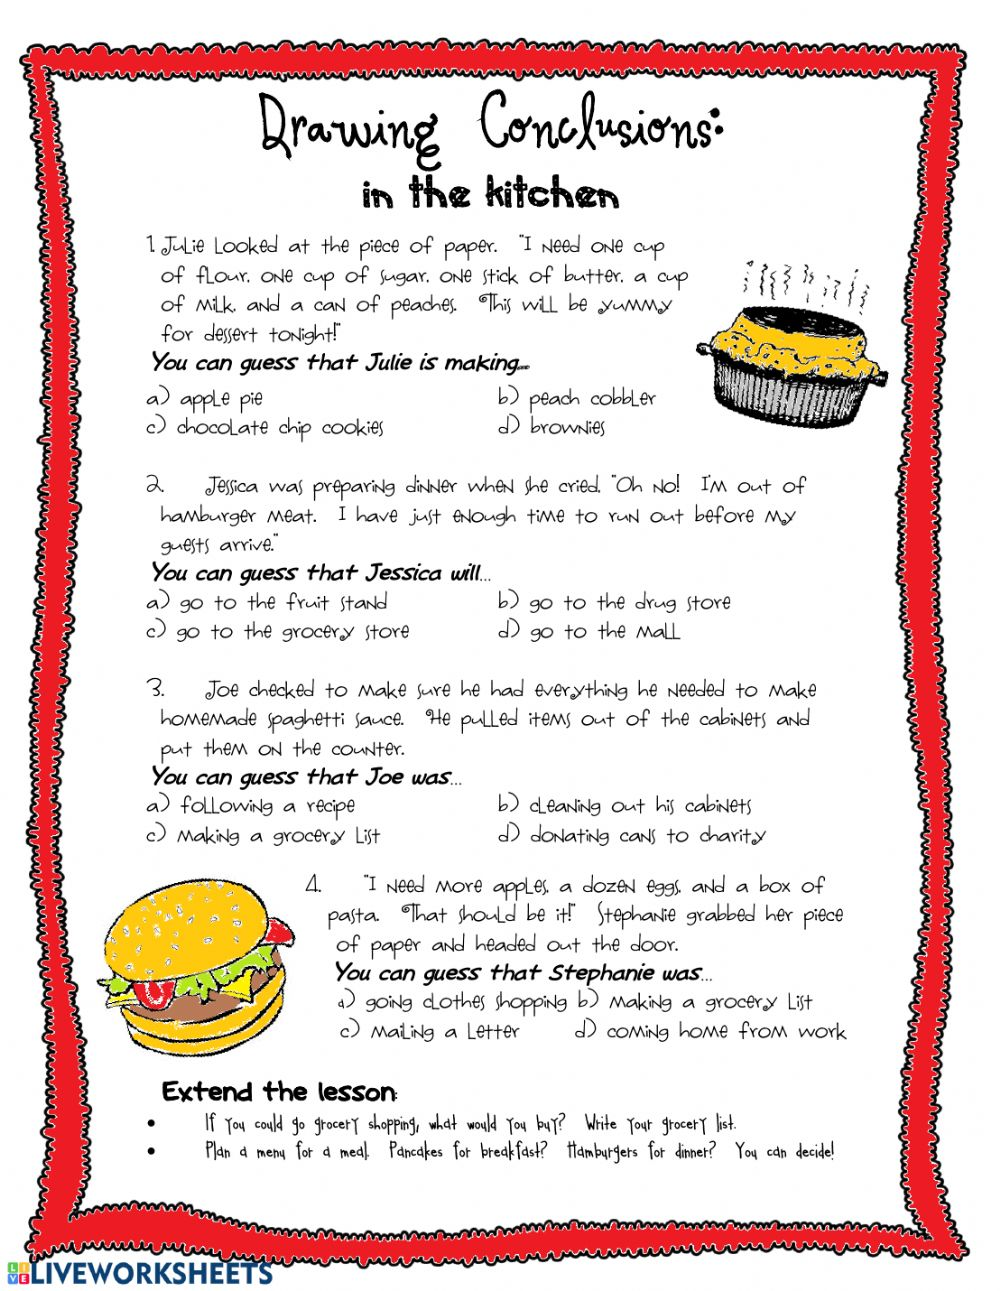 hight resolution of Drawing Conclusions: In the kitchen worksheet